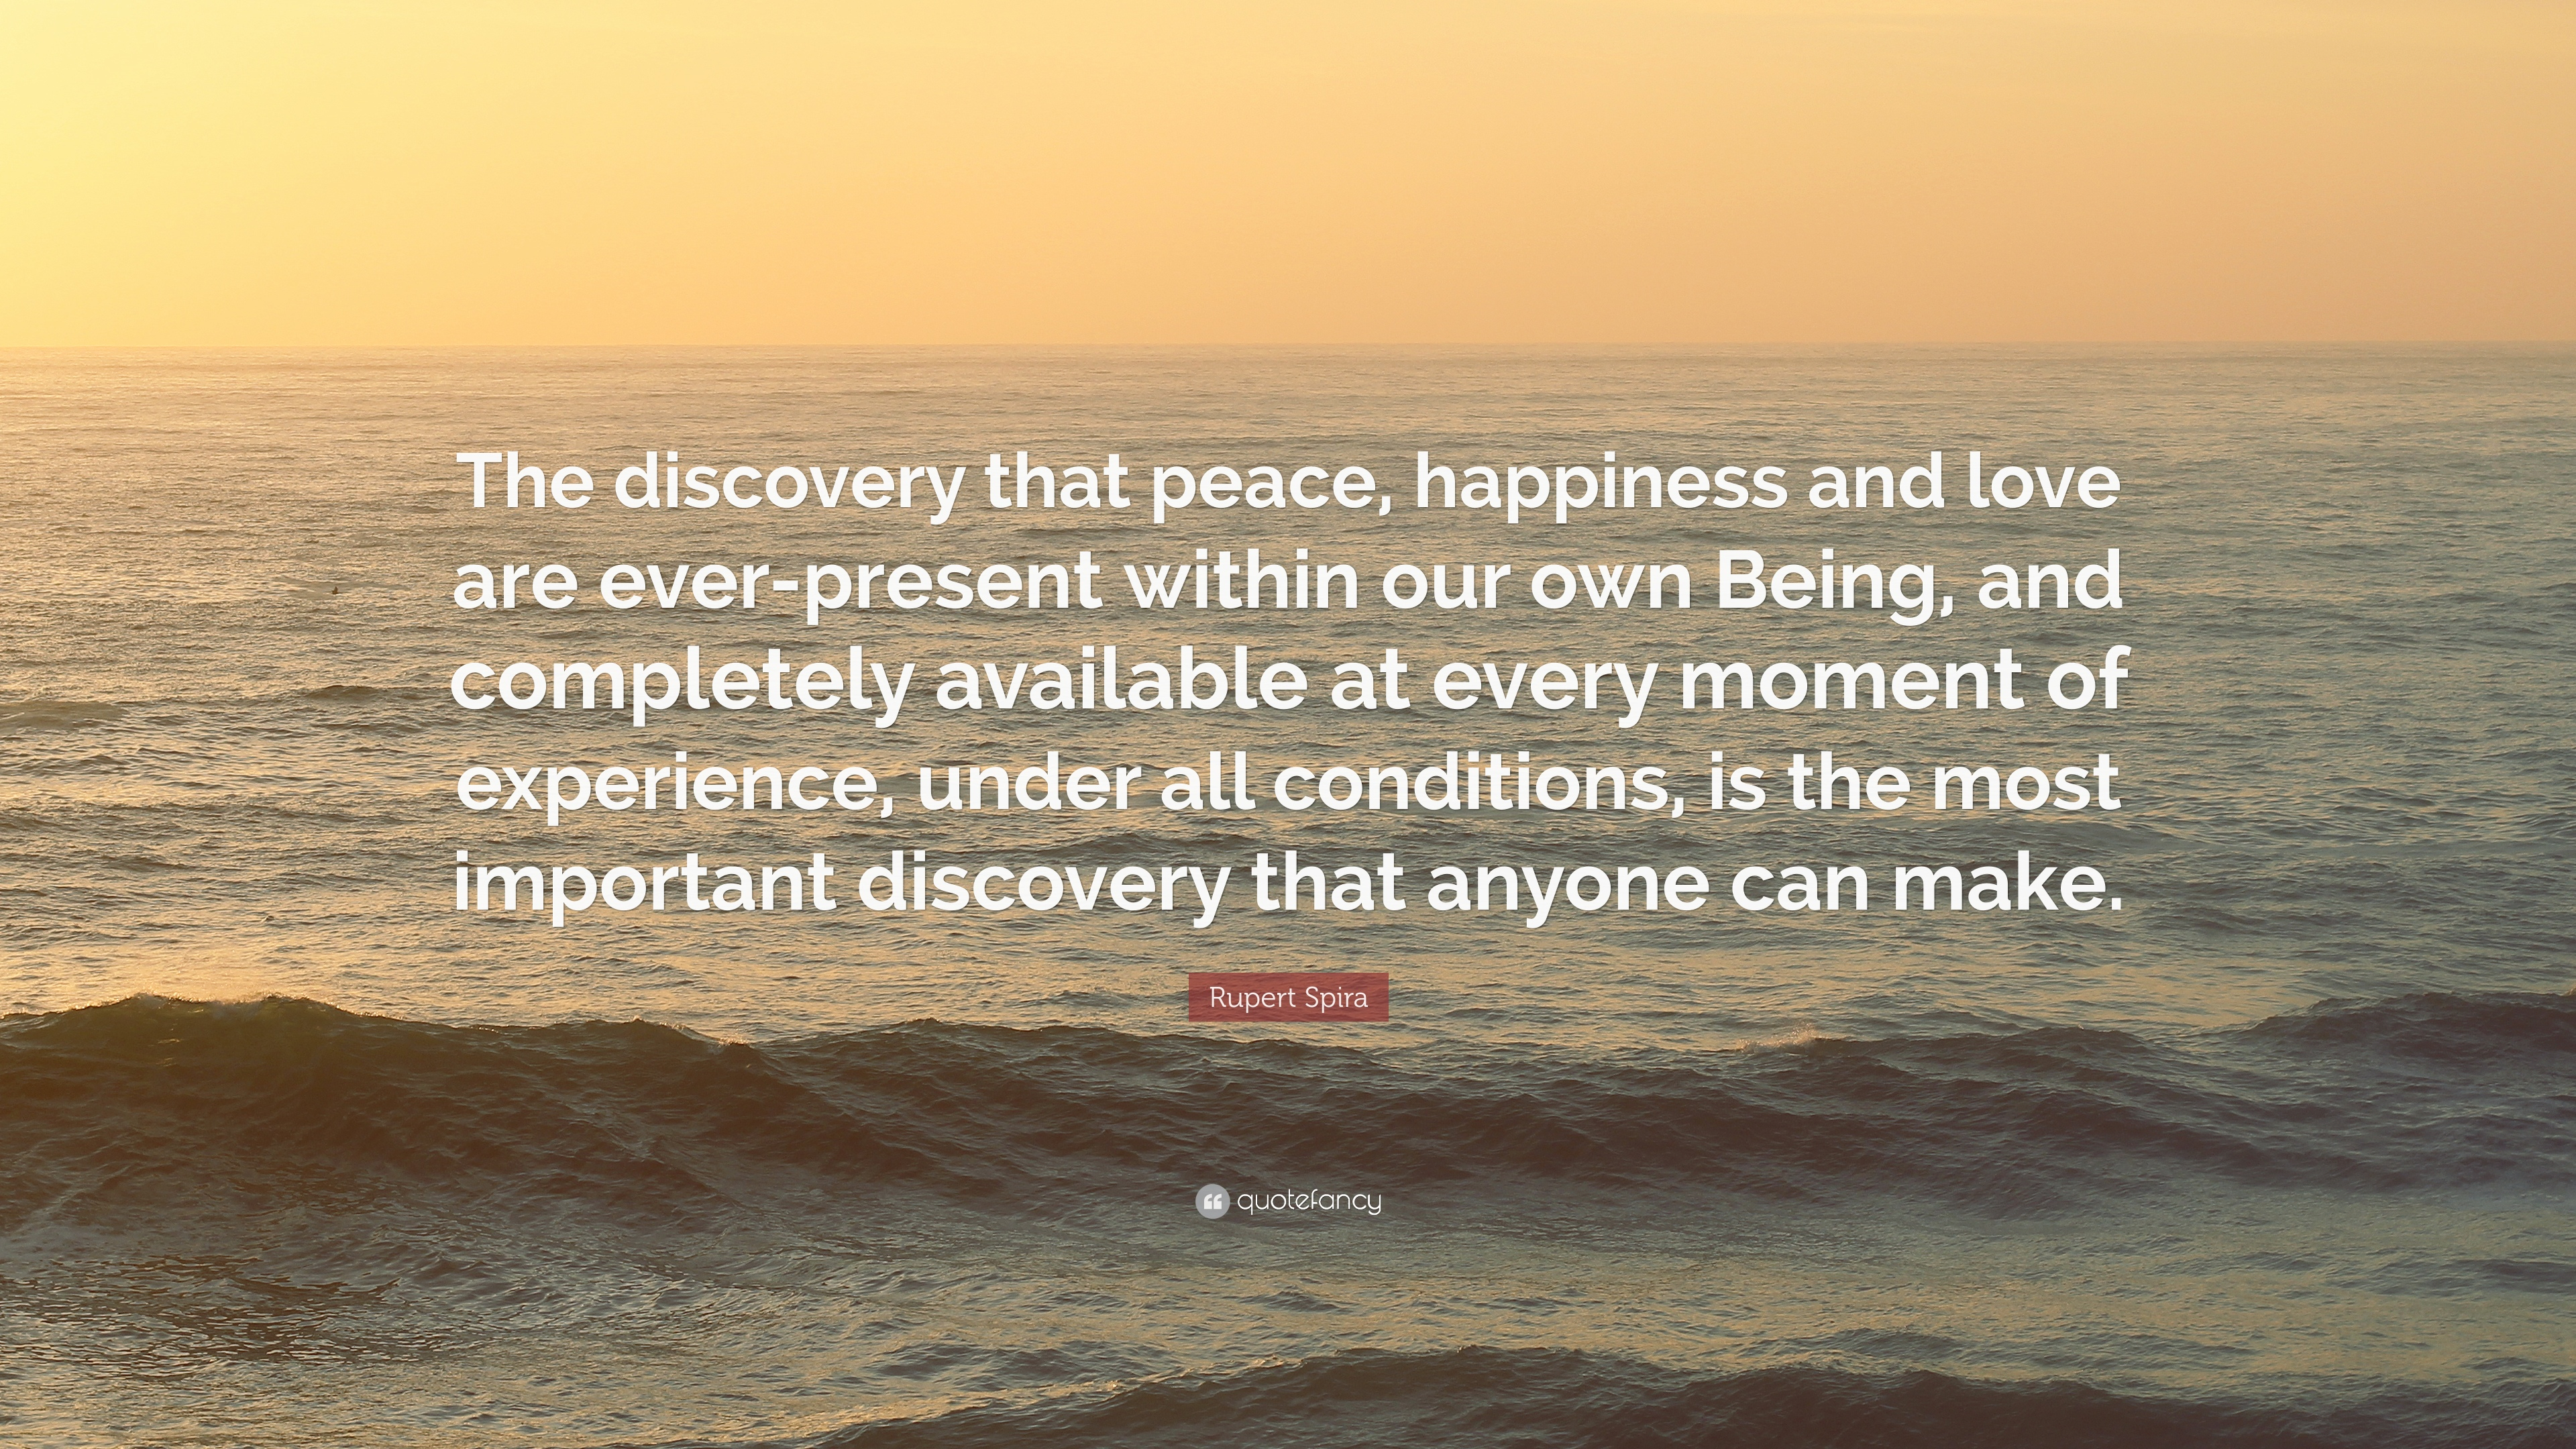 Rupert Spira Quote The Discovery That Peace Happiness And Love Are Ever Present Within Our Own Being And Completely Available At Every Mo 10 Wallpapers Quotefancy